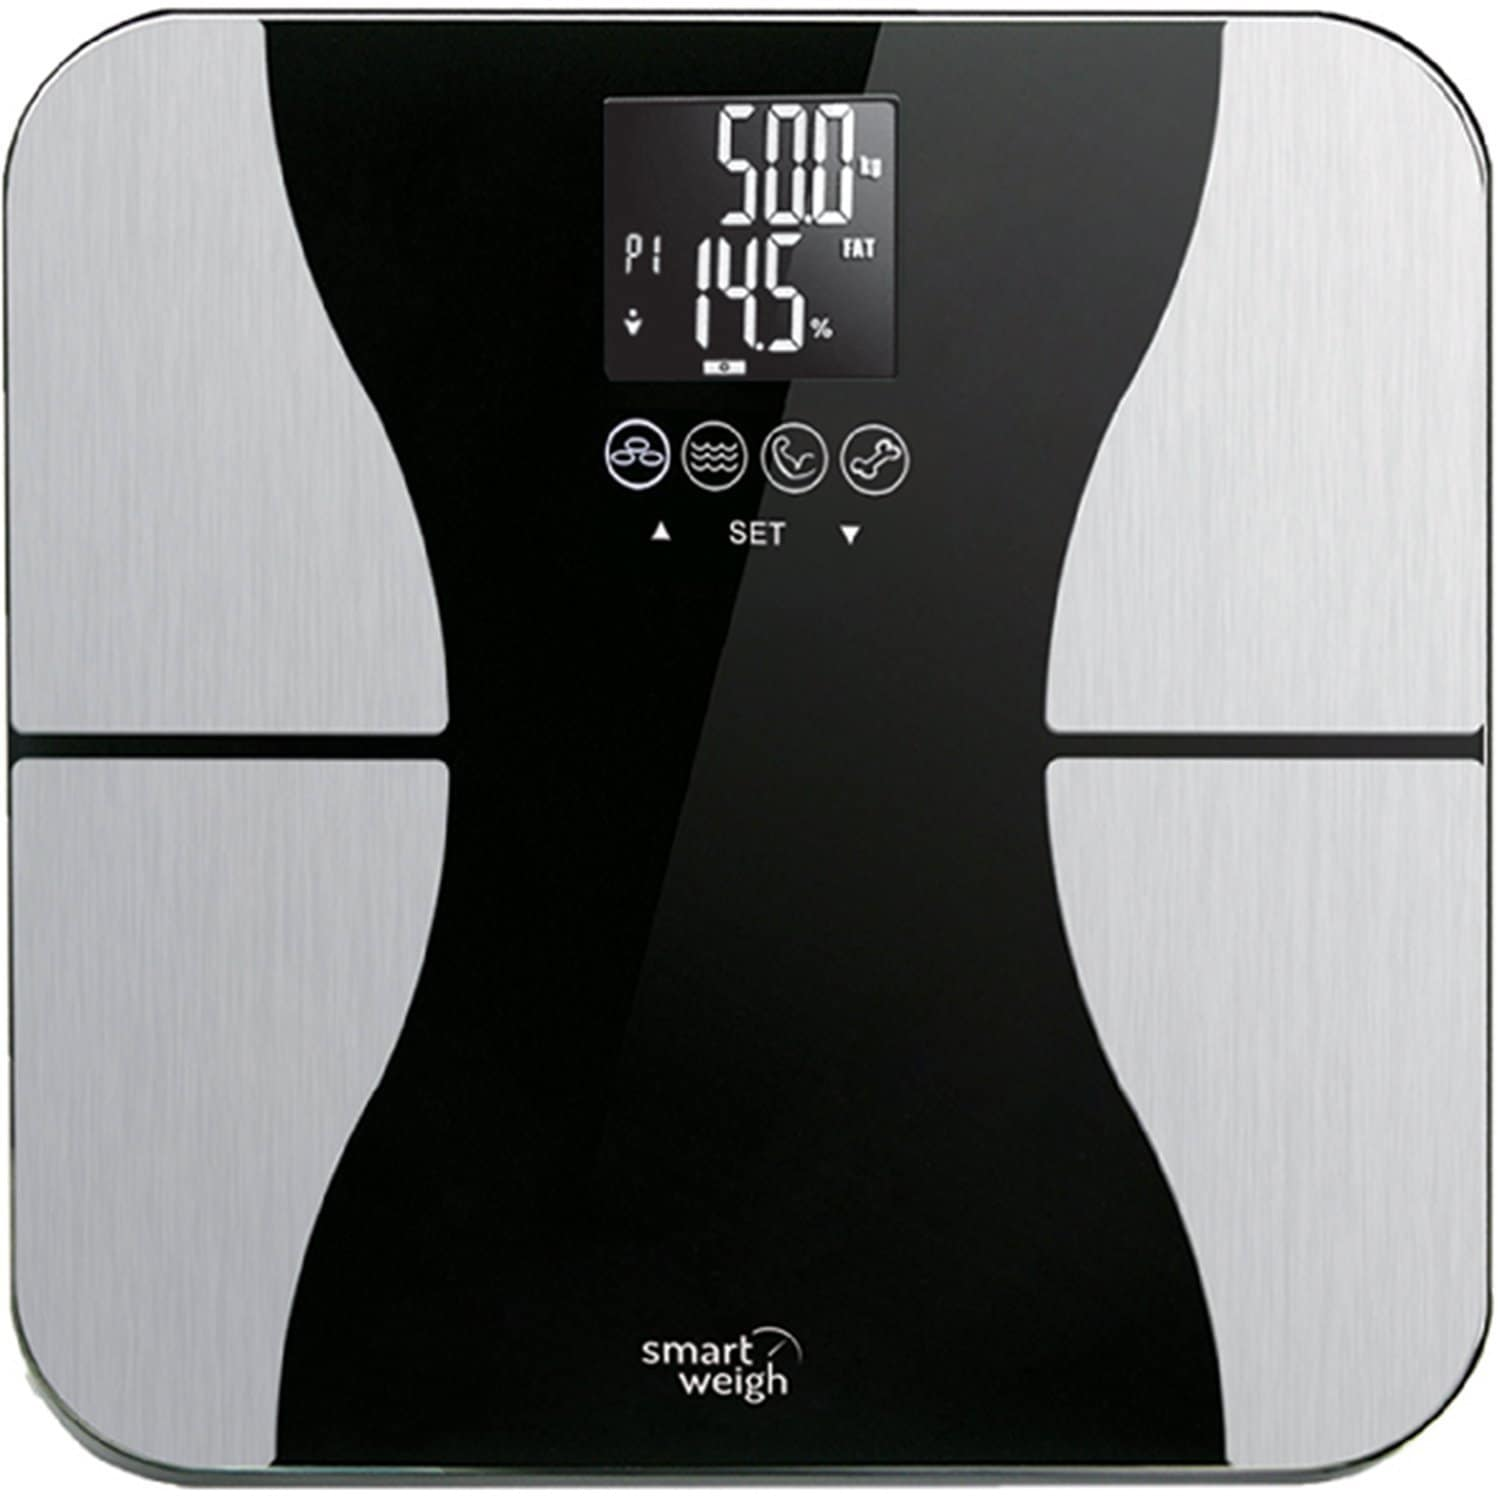 Smart Weigh Body Fat digital precision scale Best_Bathroom_Scales Best Bathroom Scales